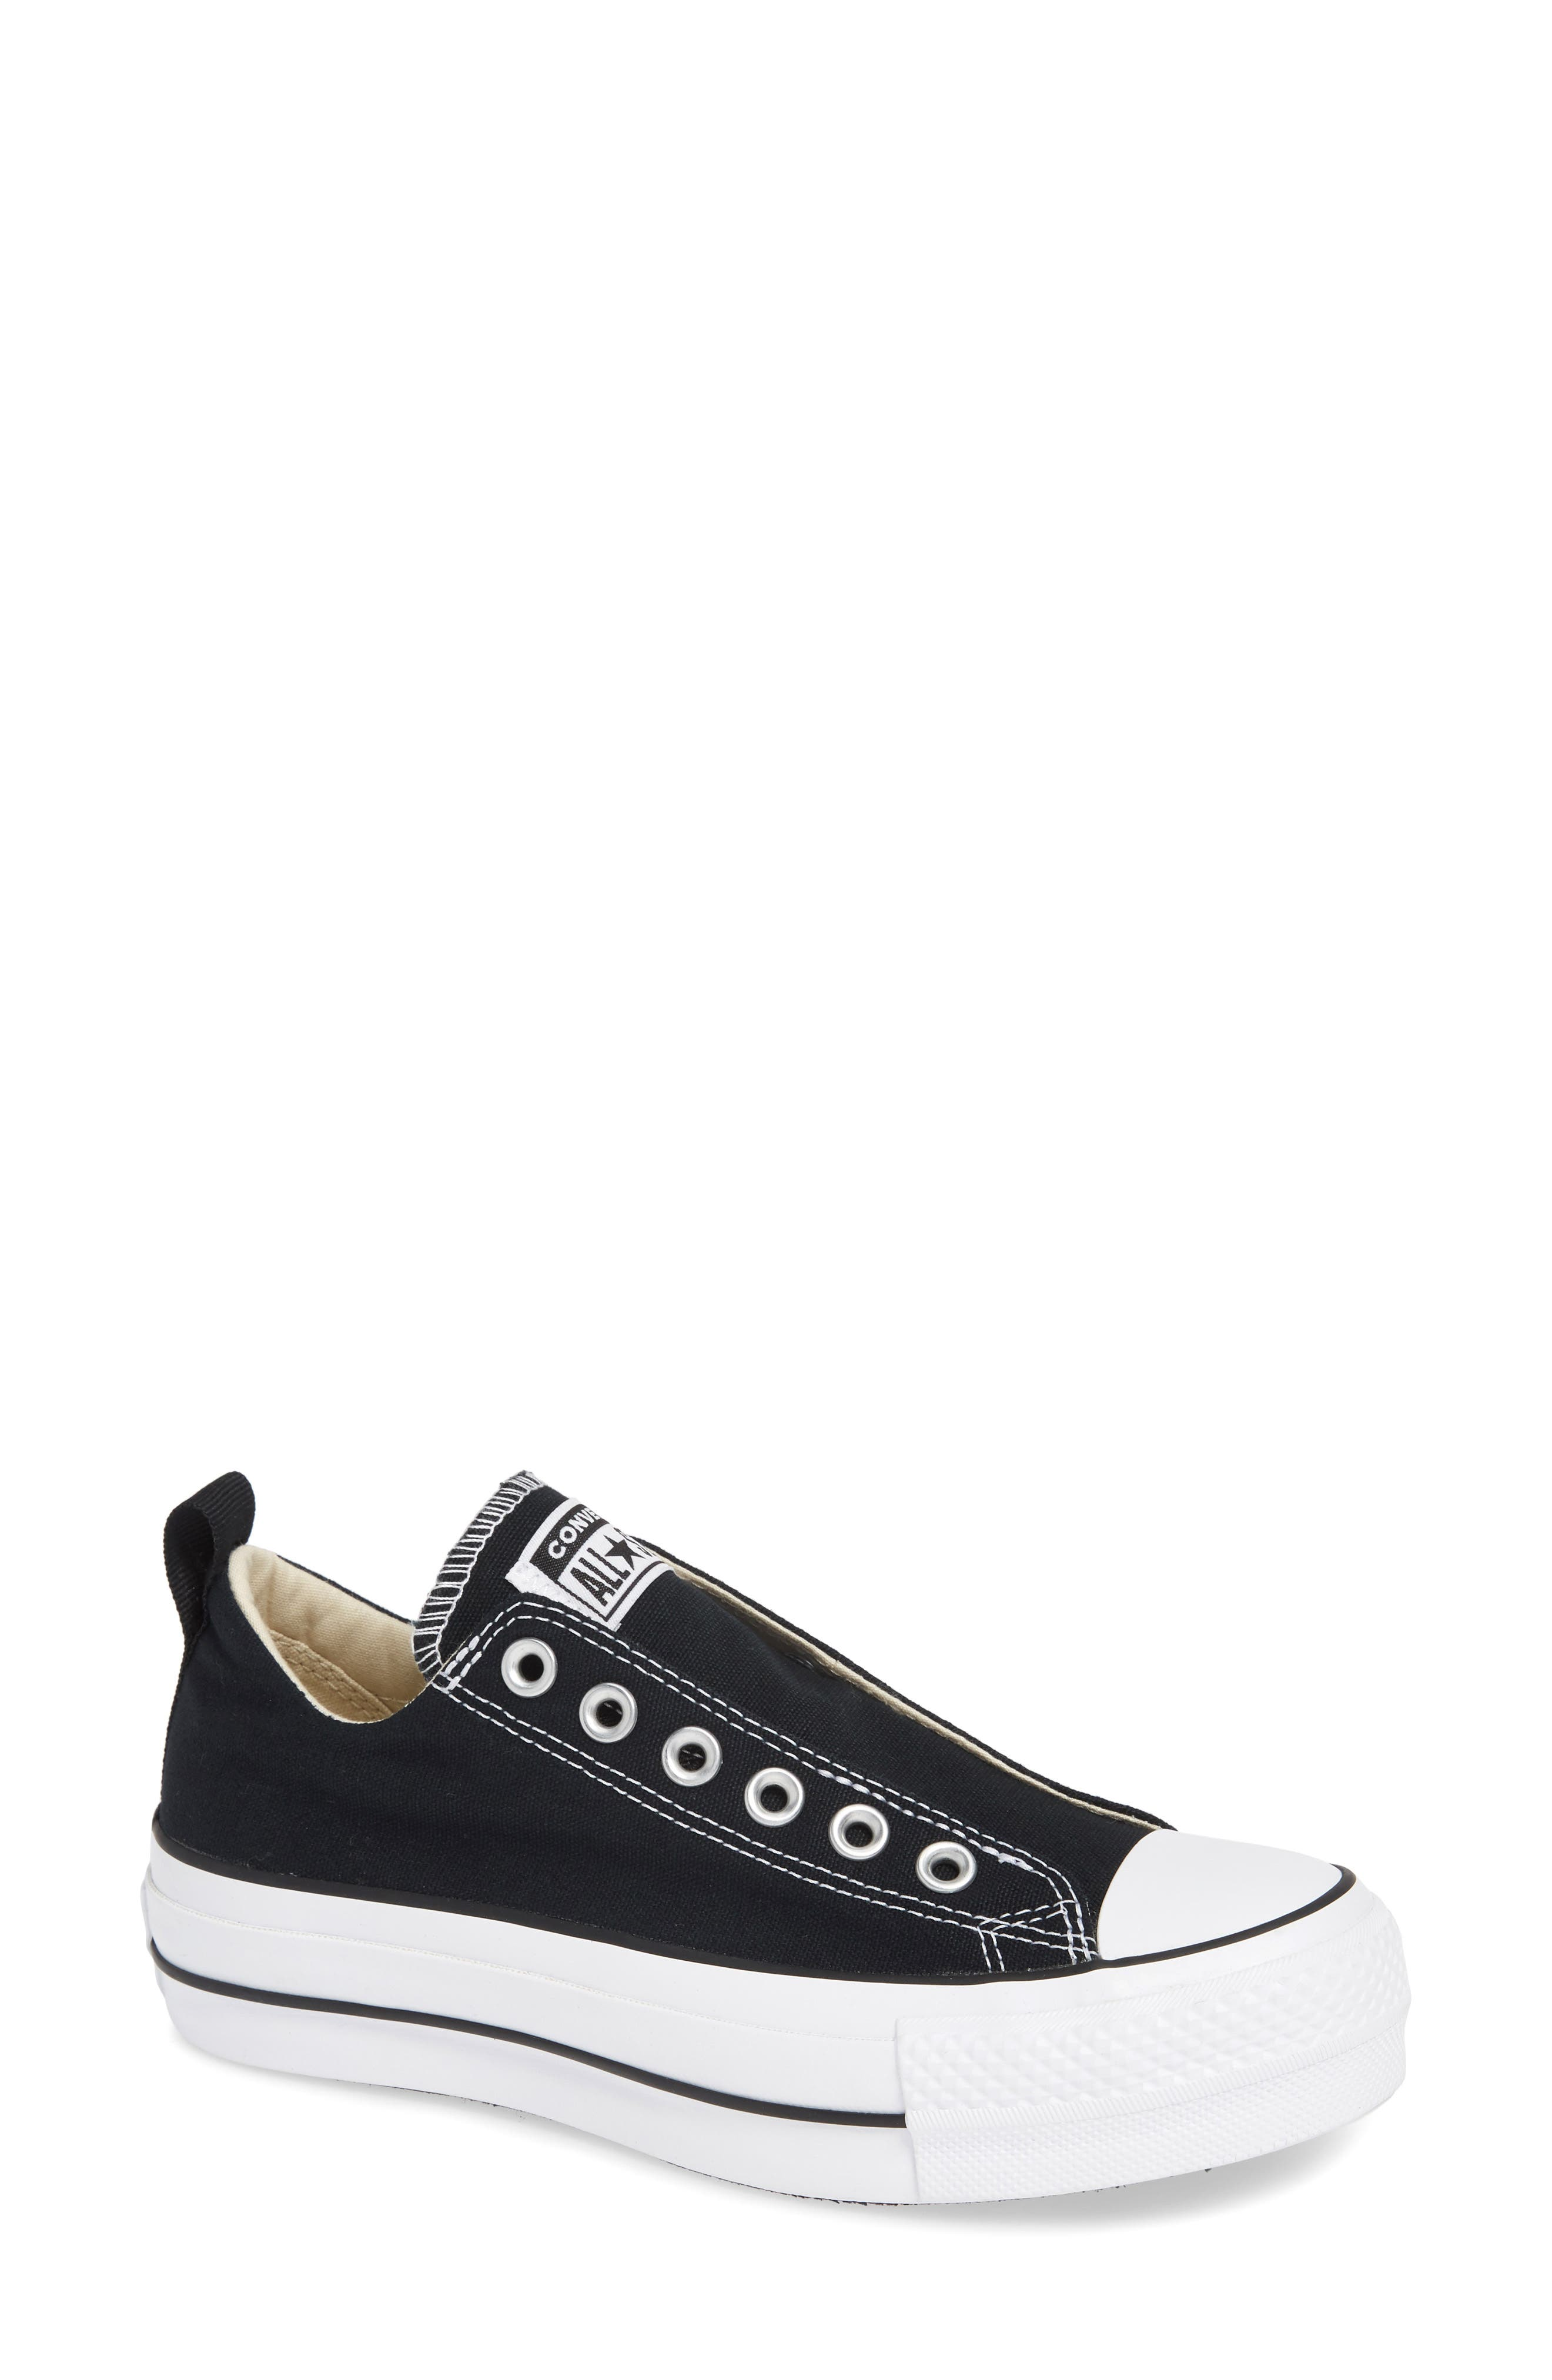 Converse Chuck Taylor All Star Low Top Sneaker, Black